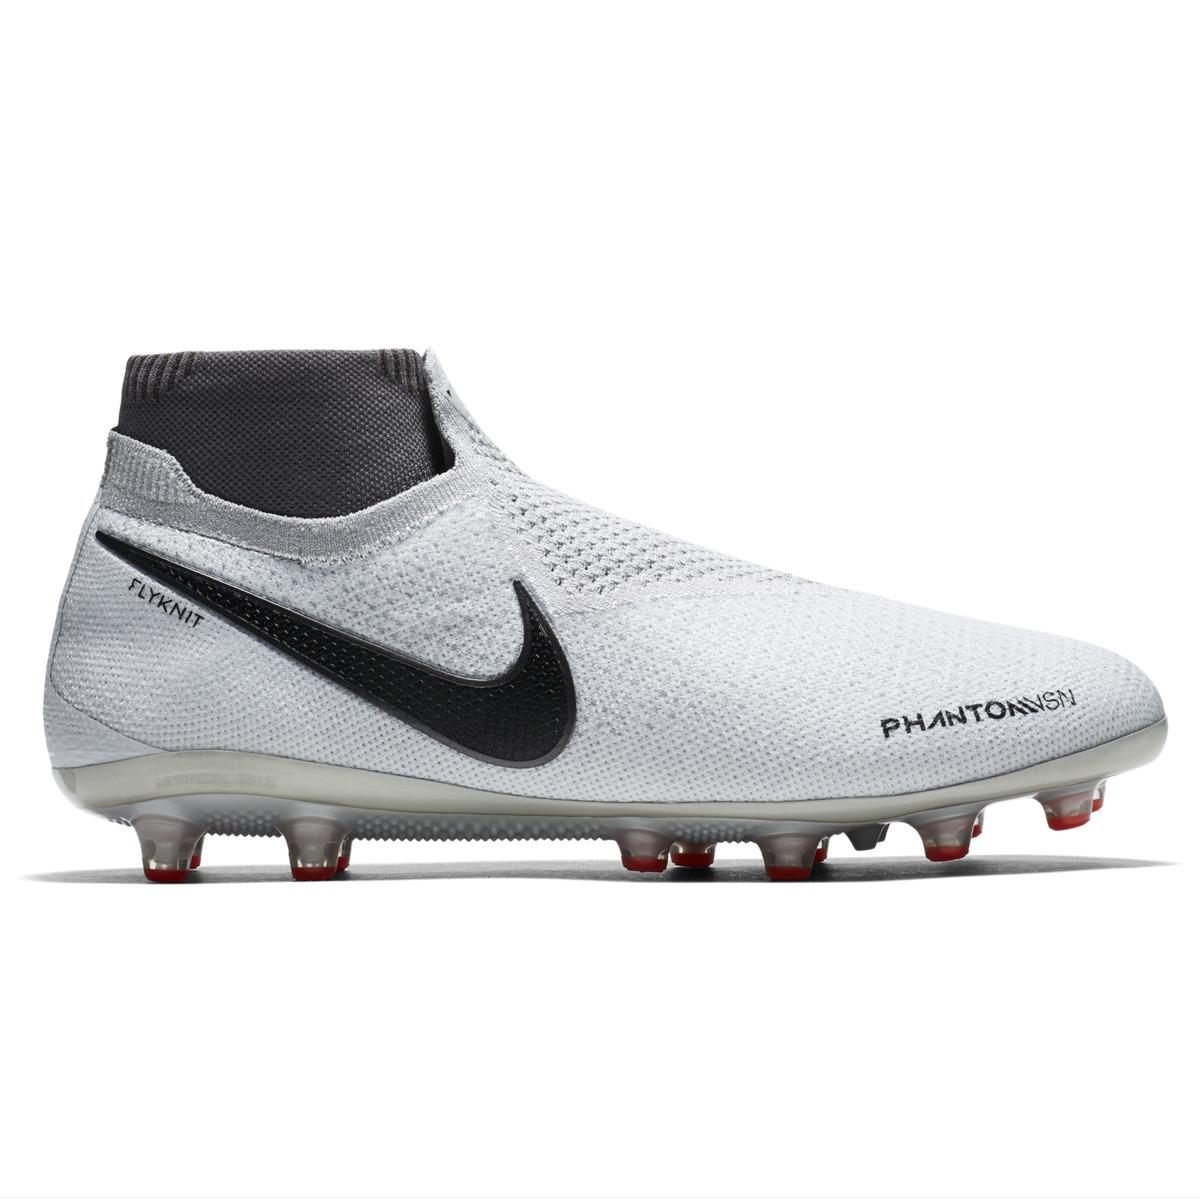 17a39310fc2 Nike Phantom Vision Elite Dynamic Fit Ag-pro Football Boots for Men ...